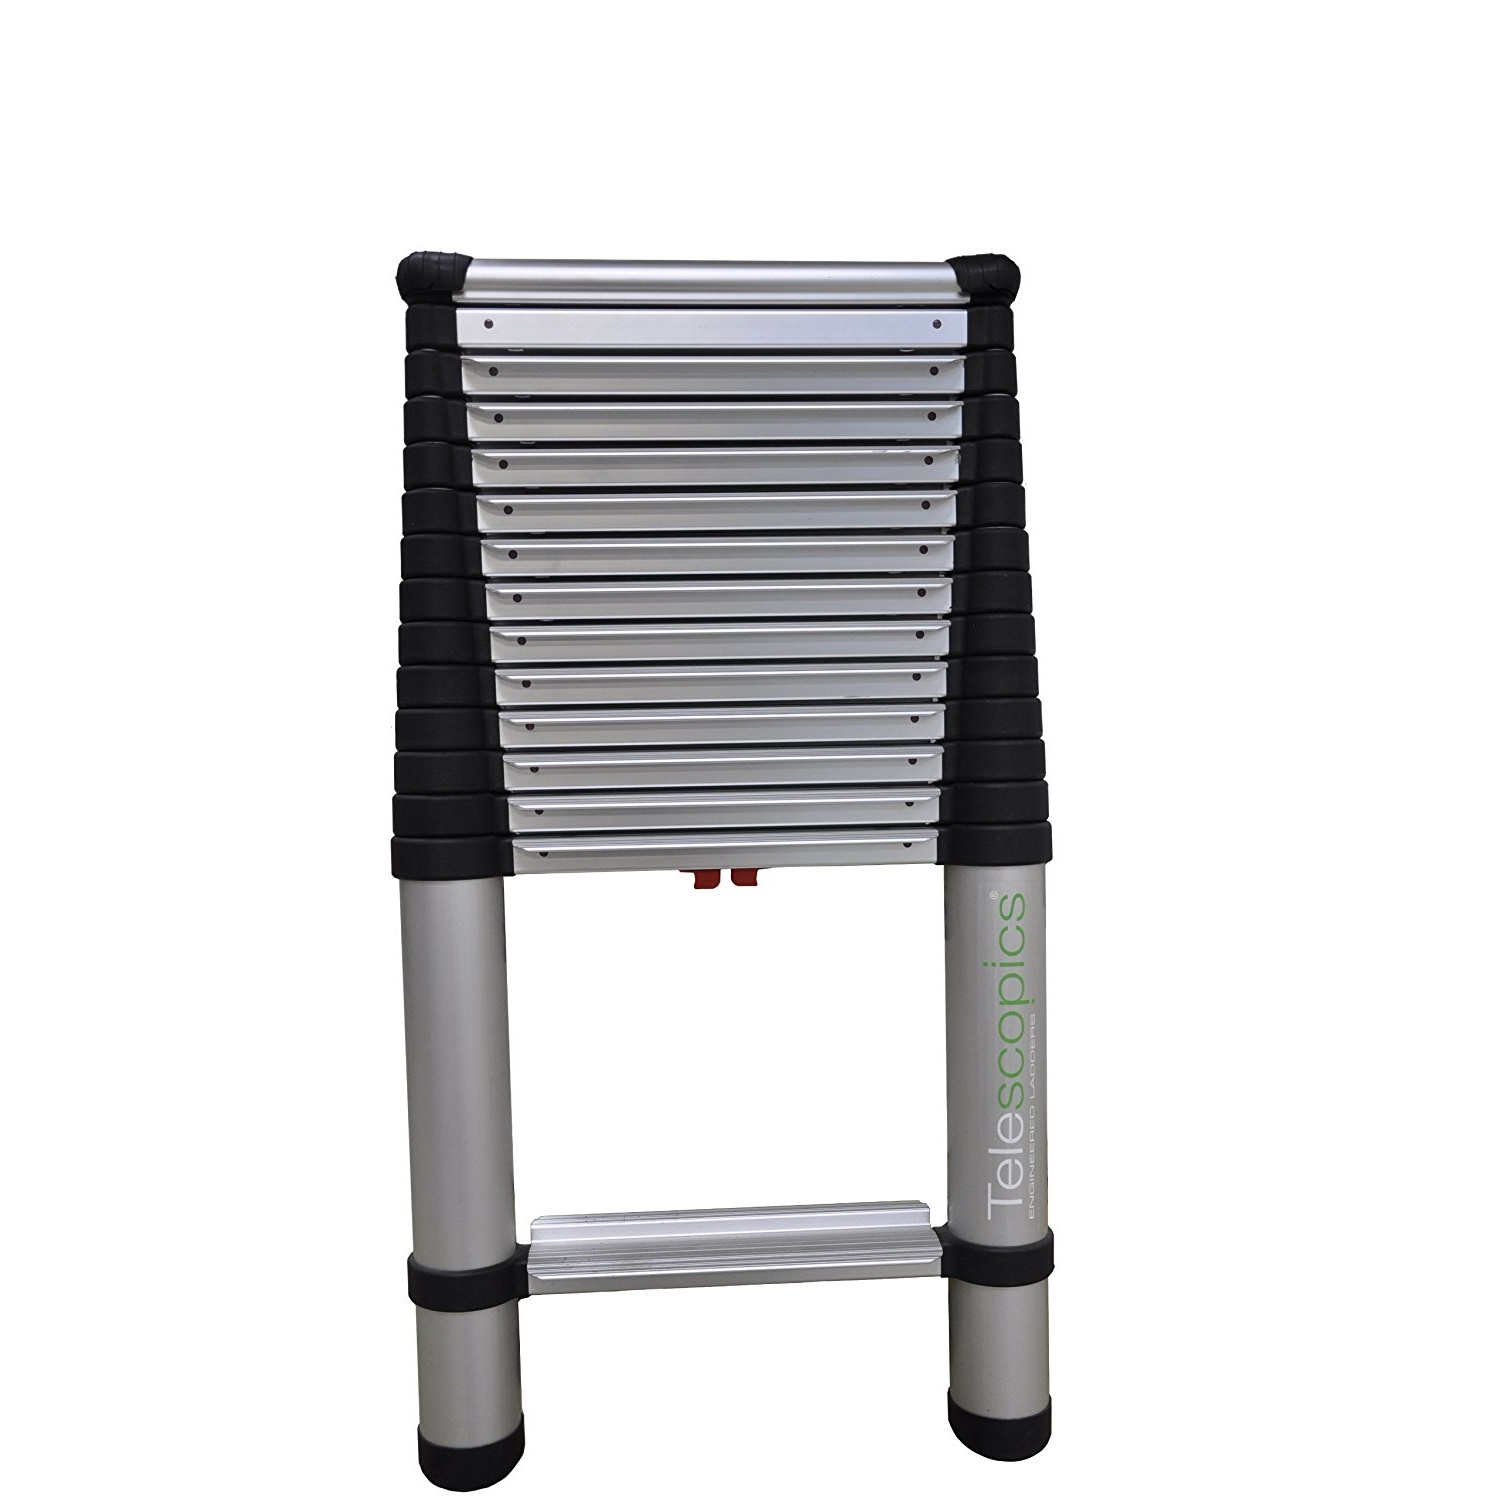 Telesteps Professional Type 1A Telescopic Ladder